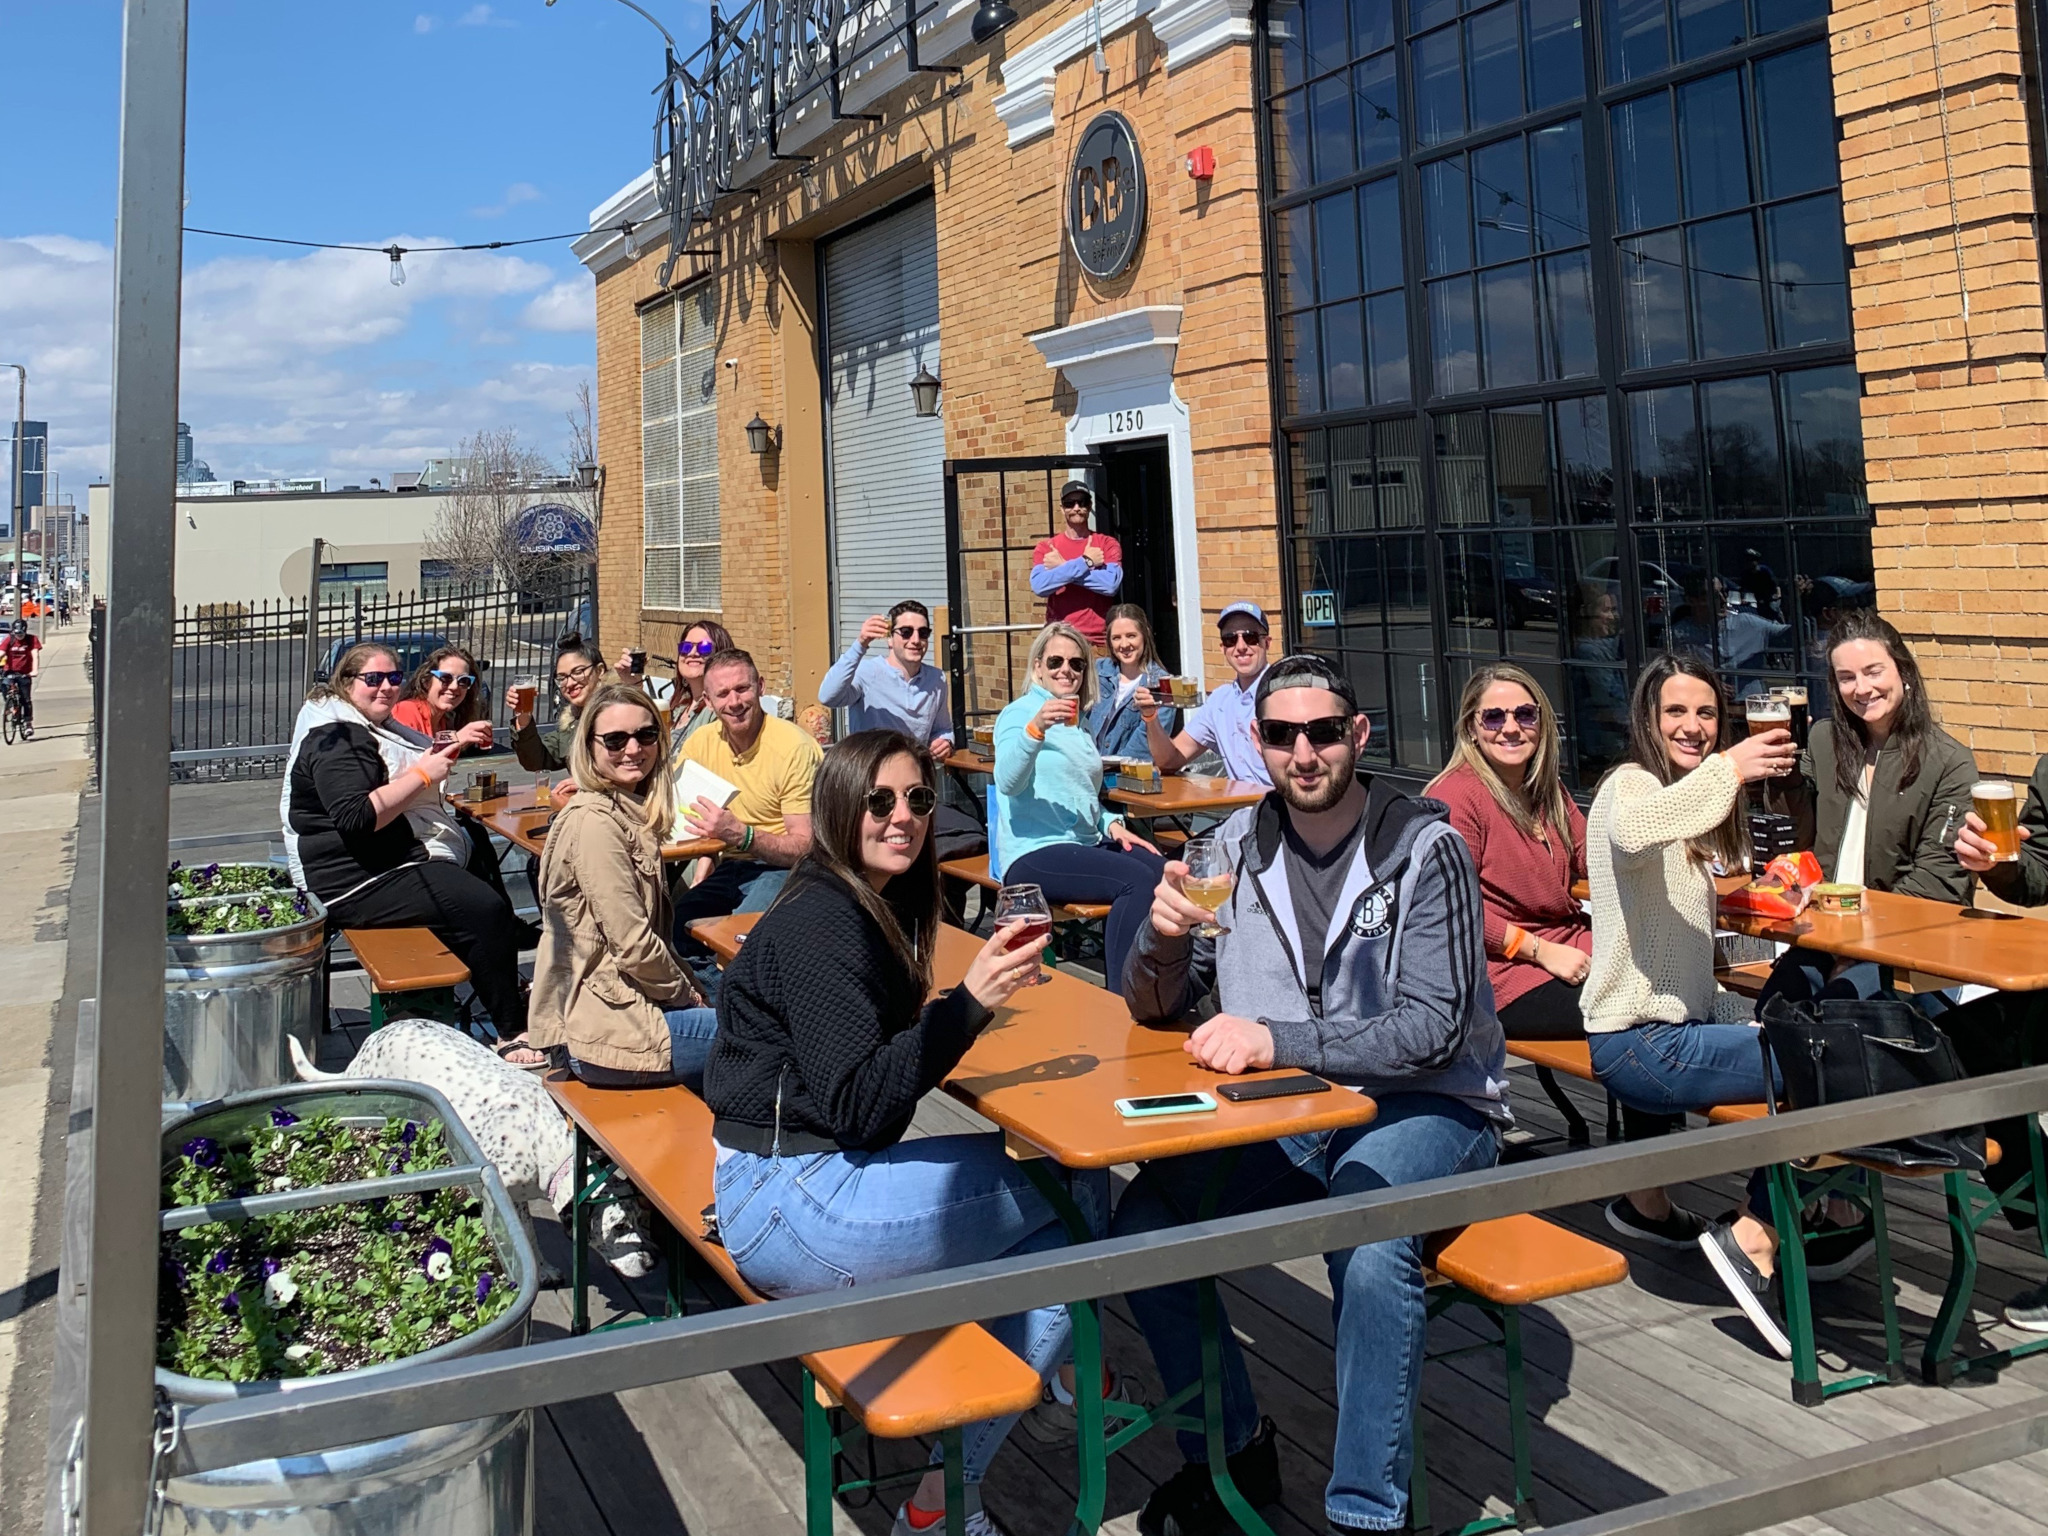 Hoist a cold one at the coolest beer gardens